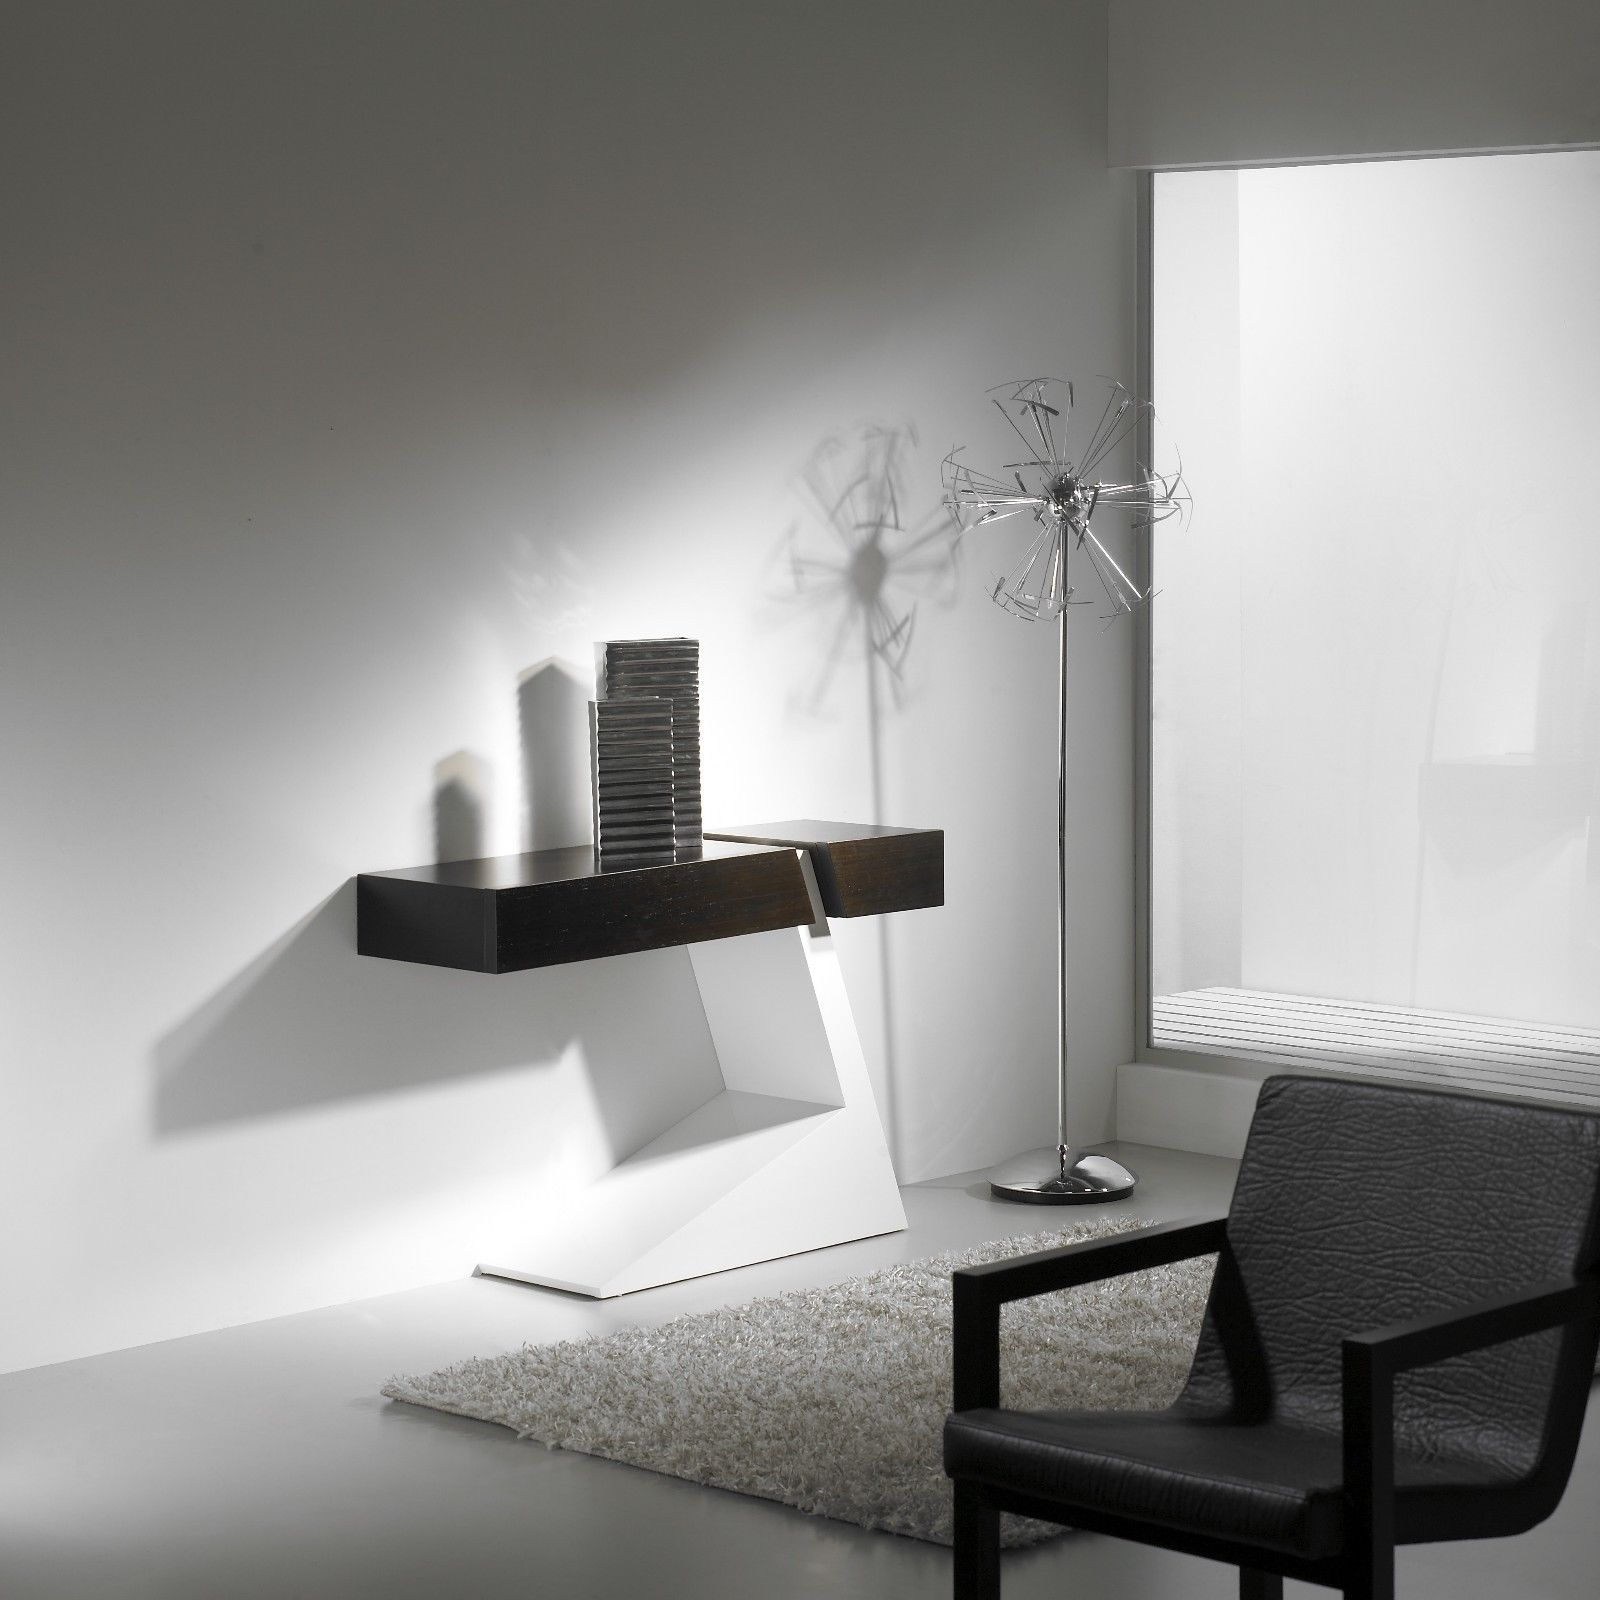 J&M Waiting Premium White High Gloss Console Table Contemporary Modern Style